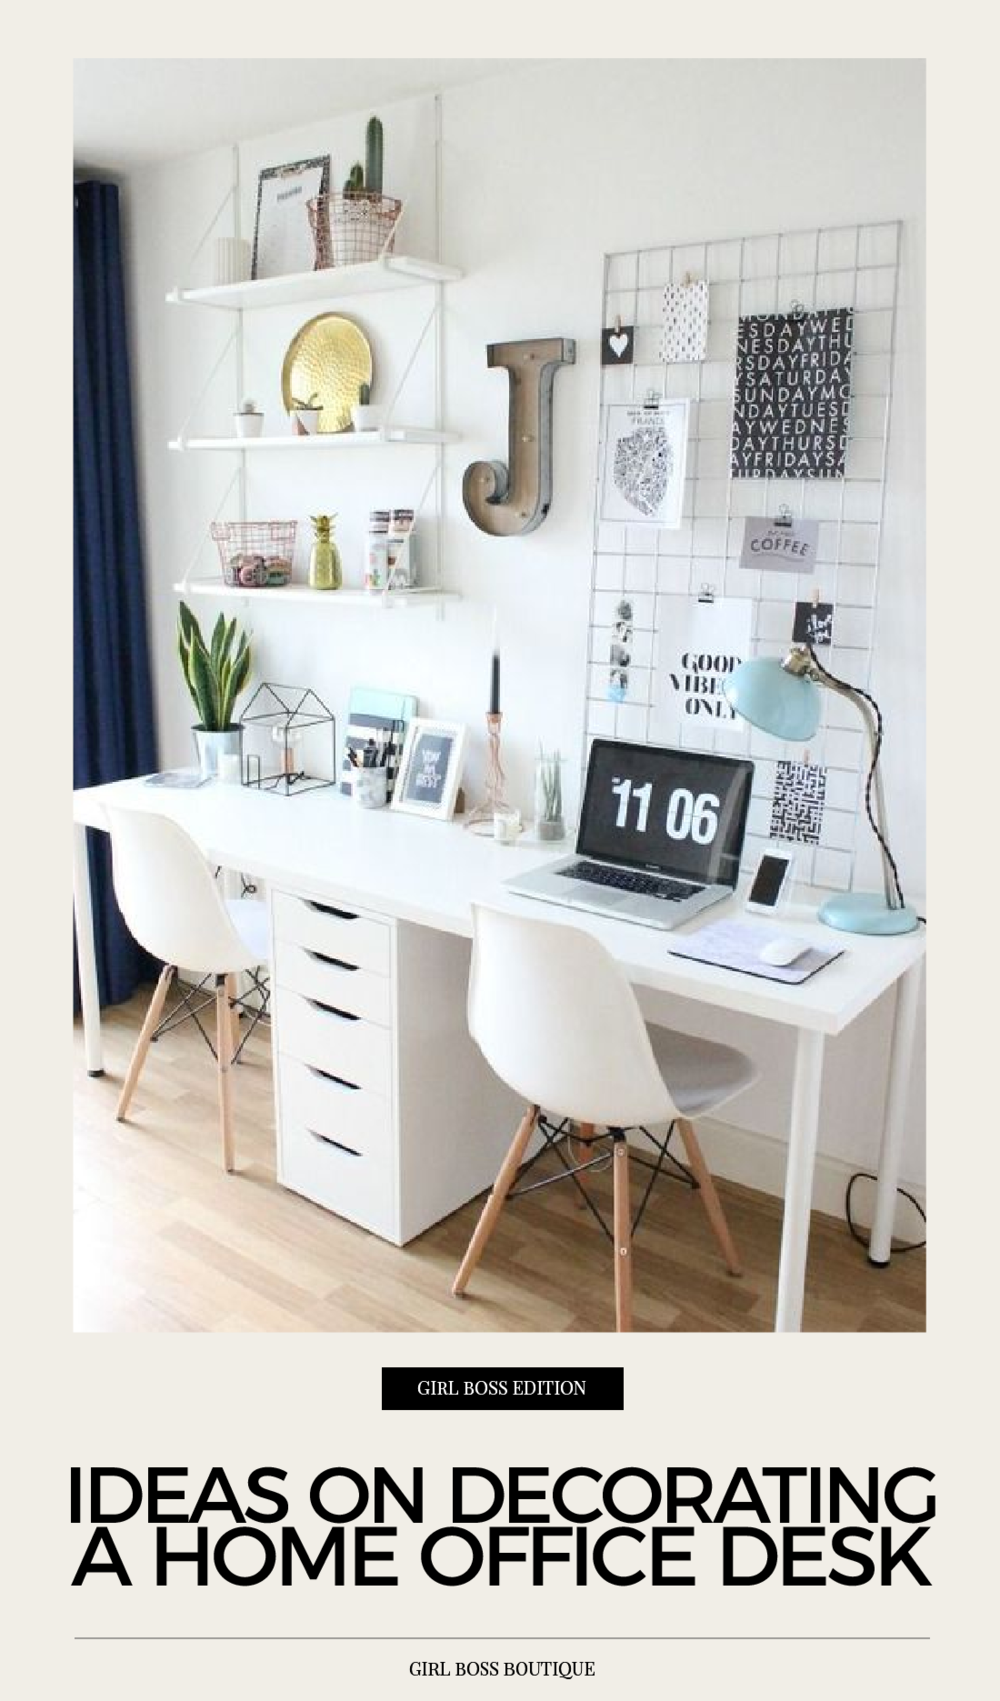 Ideas on decorating a home office desk. You know how they say leave your work at the office when you come home?  Well for some of you girl bosses home is office and your own personal as well as your work haven.  And Clutter and mess aren't really the best for your productivity.  Since your workspace can sometimes be a part of your home a boring drab desk with piles of paper isn't the best interior so here are some top tips for you to turn your home office decor game up.